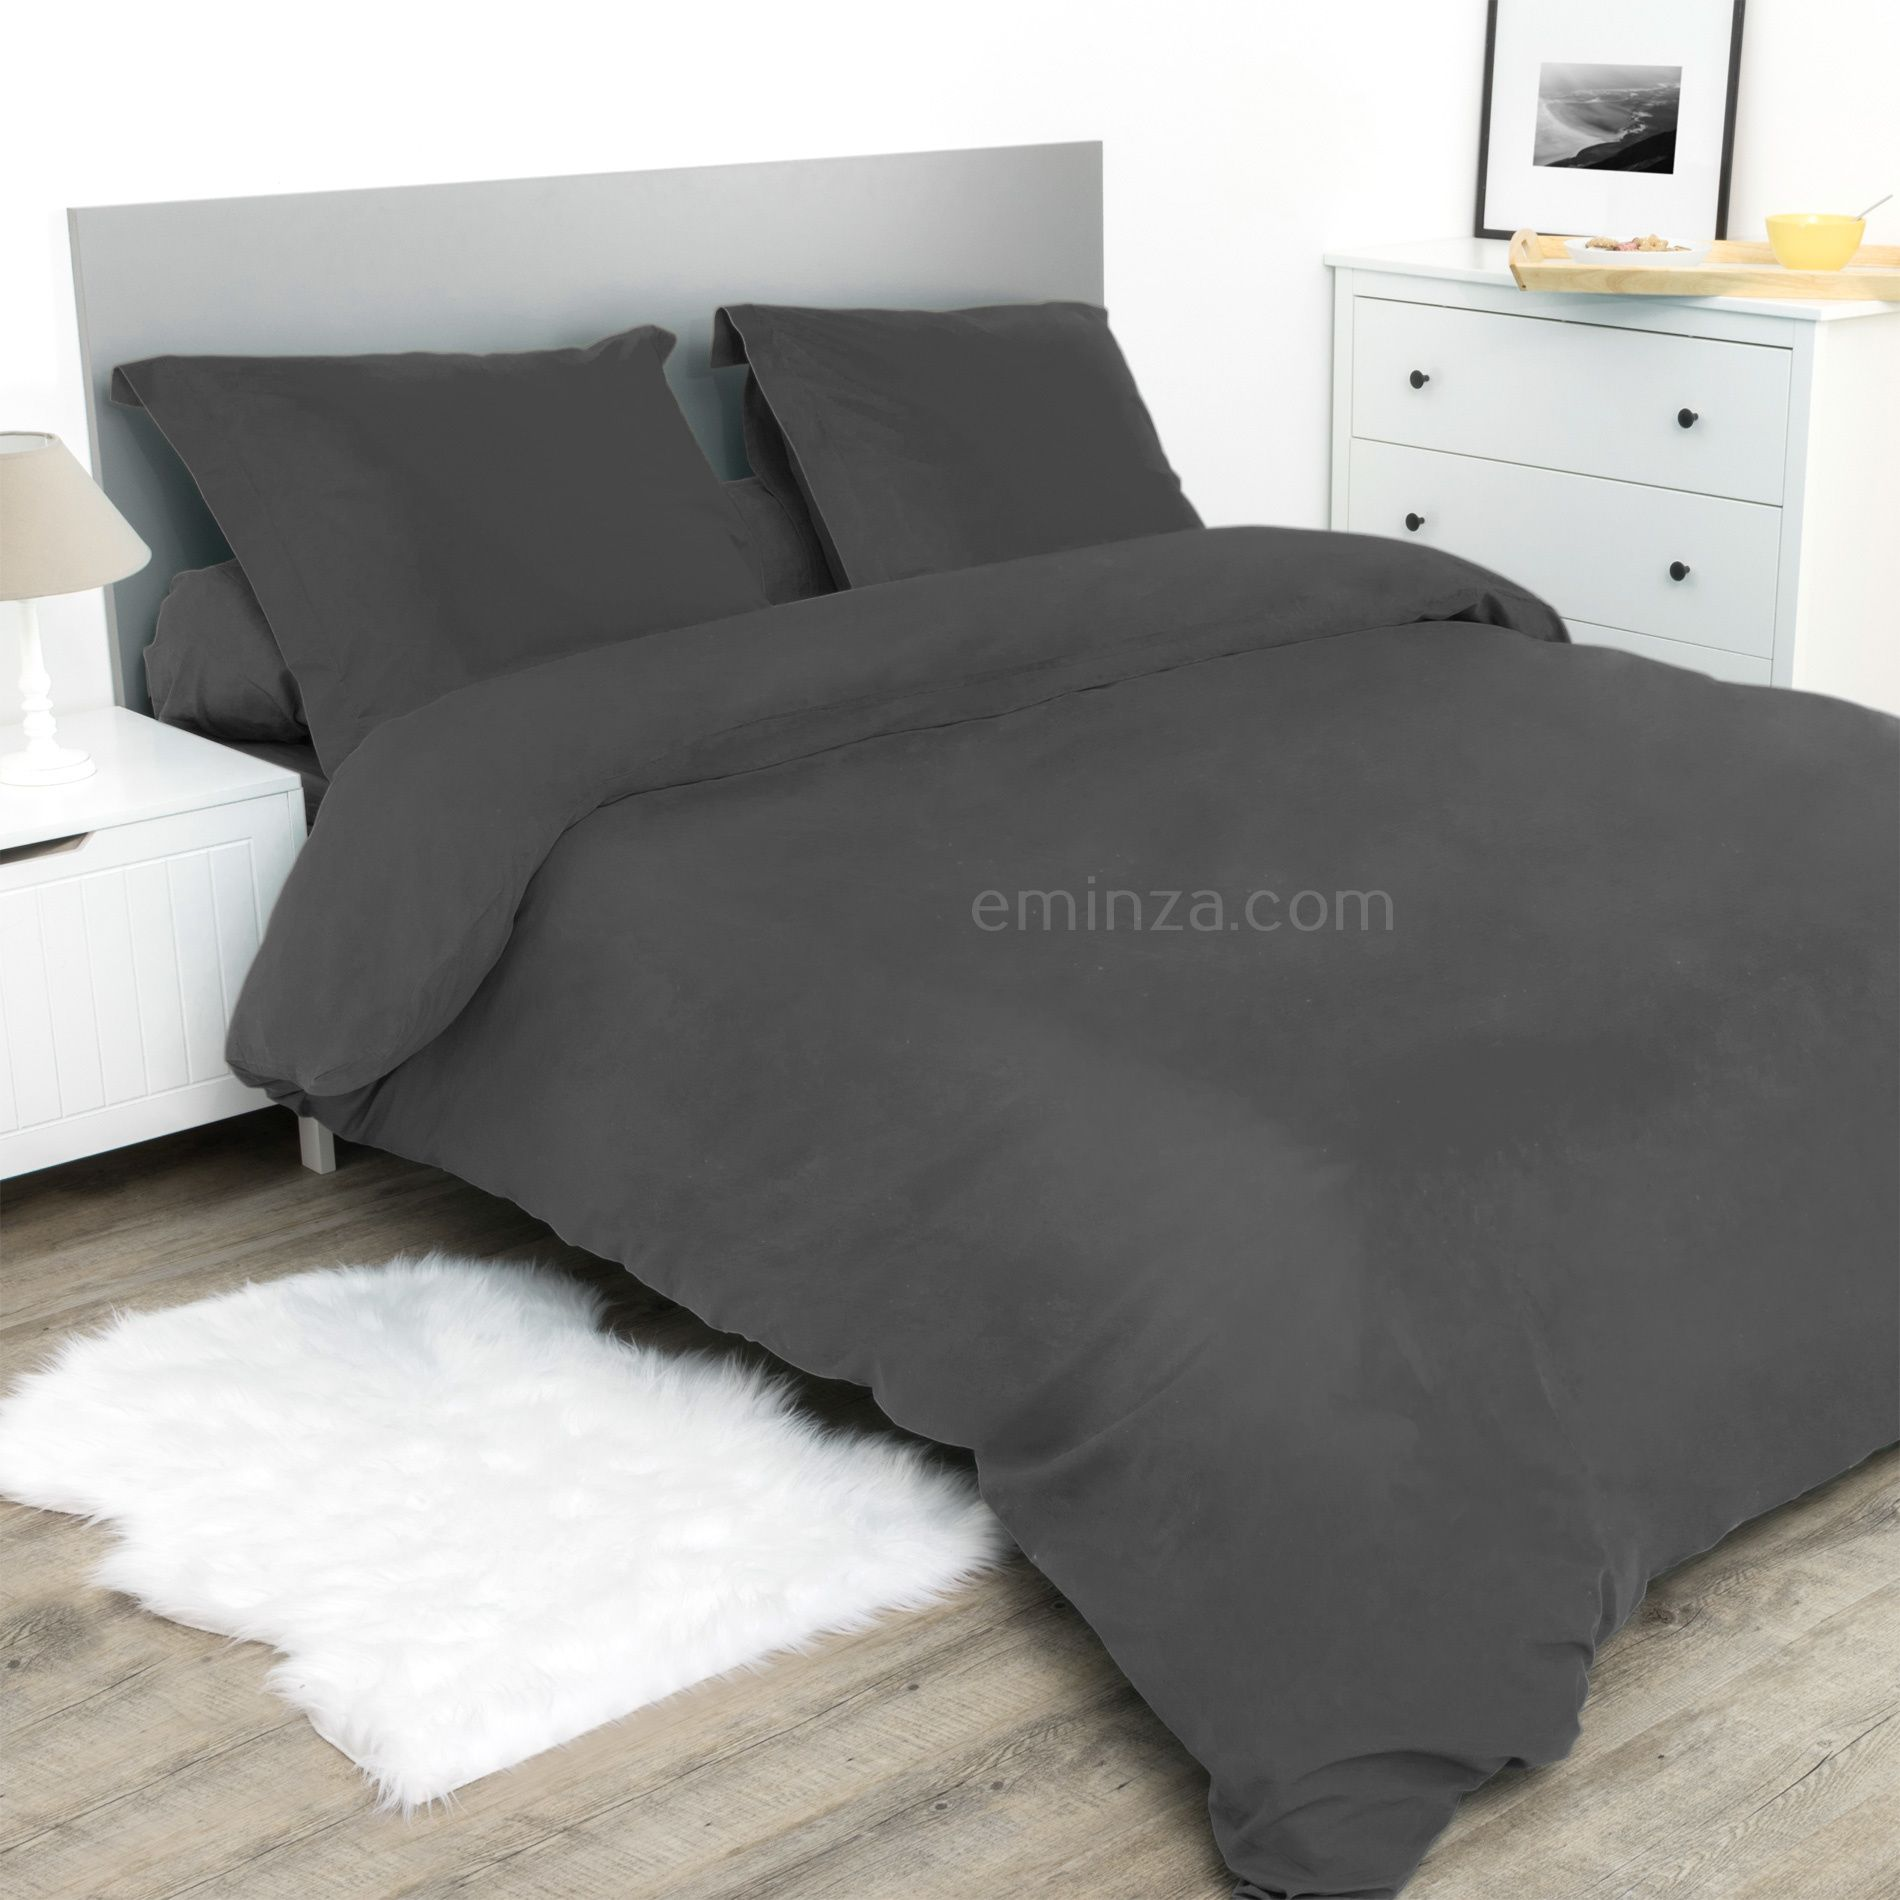 drap housse 180 cm confort anthracite drap housse eminza. Black Bedroom Furniture Sets. Home Design Ideas